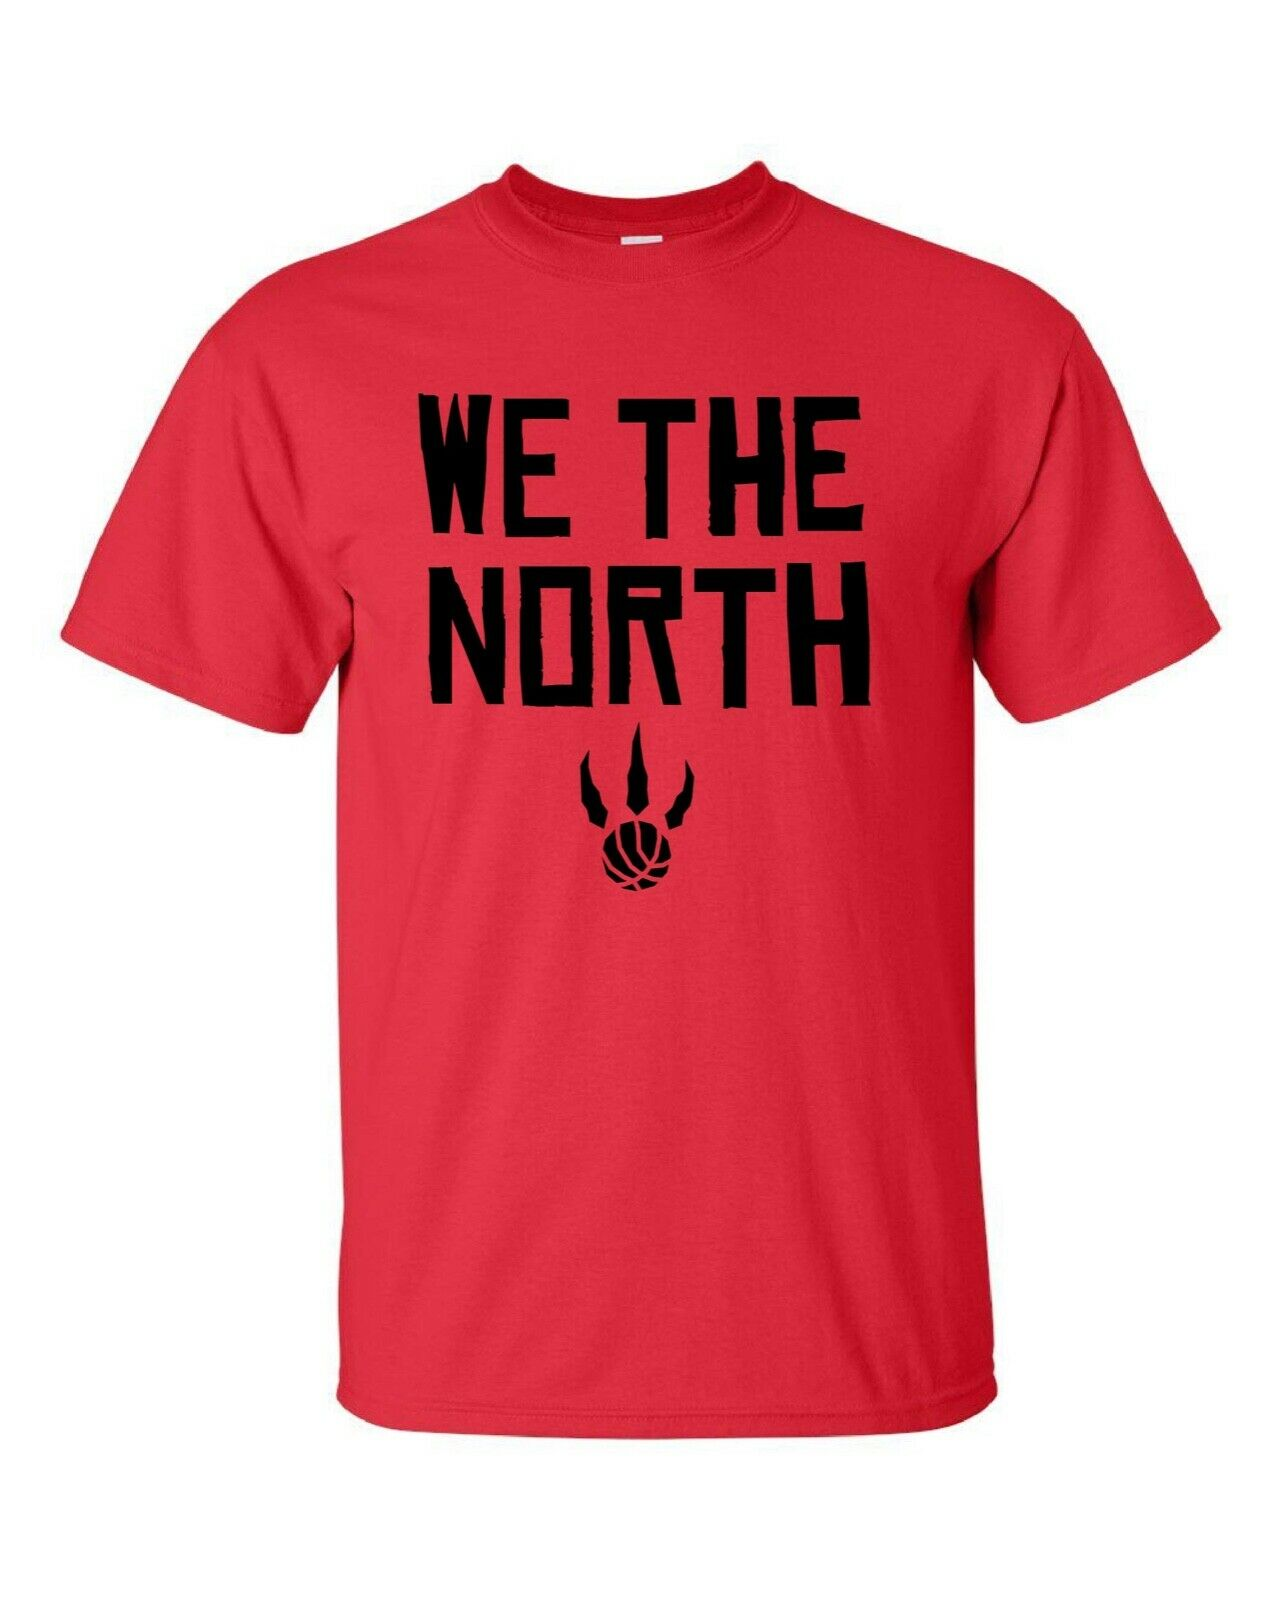 We The North T-Shirt Toronto T Shirt Raptors Champs 2020 Leonard Kyle Lowry S-5xl Harajuku Streetwear Cotton T-Shirt Cool image